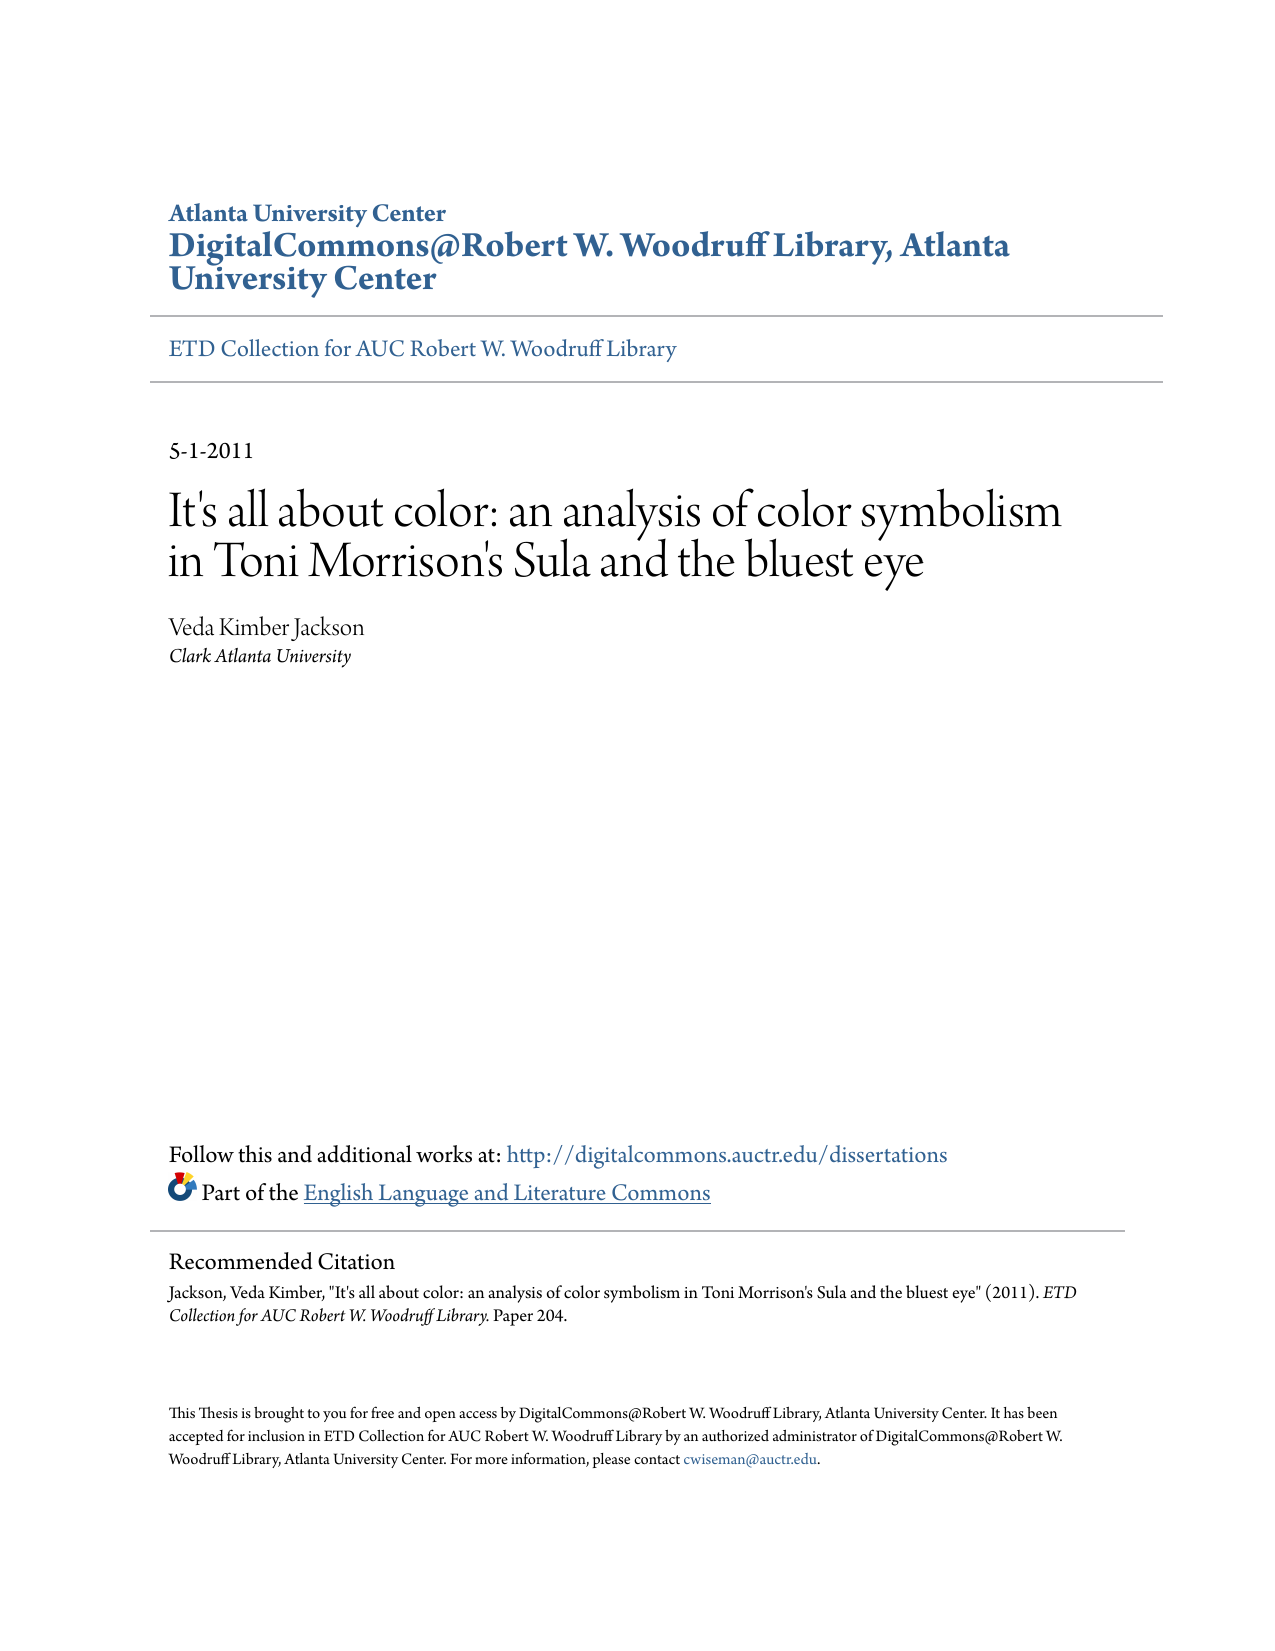 Its All About Color An Analysis Of Color Symbolism In Toni Morrisons